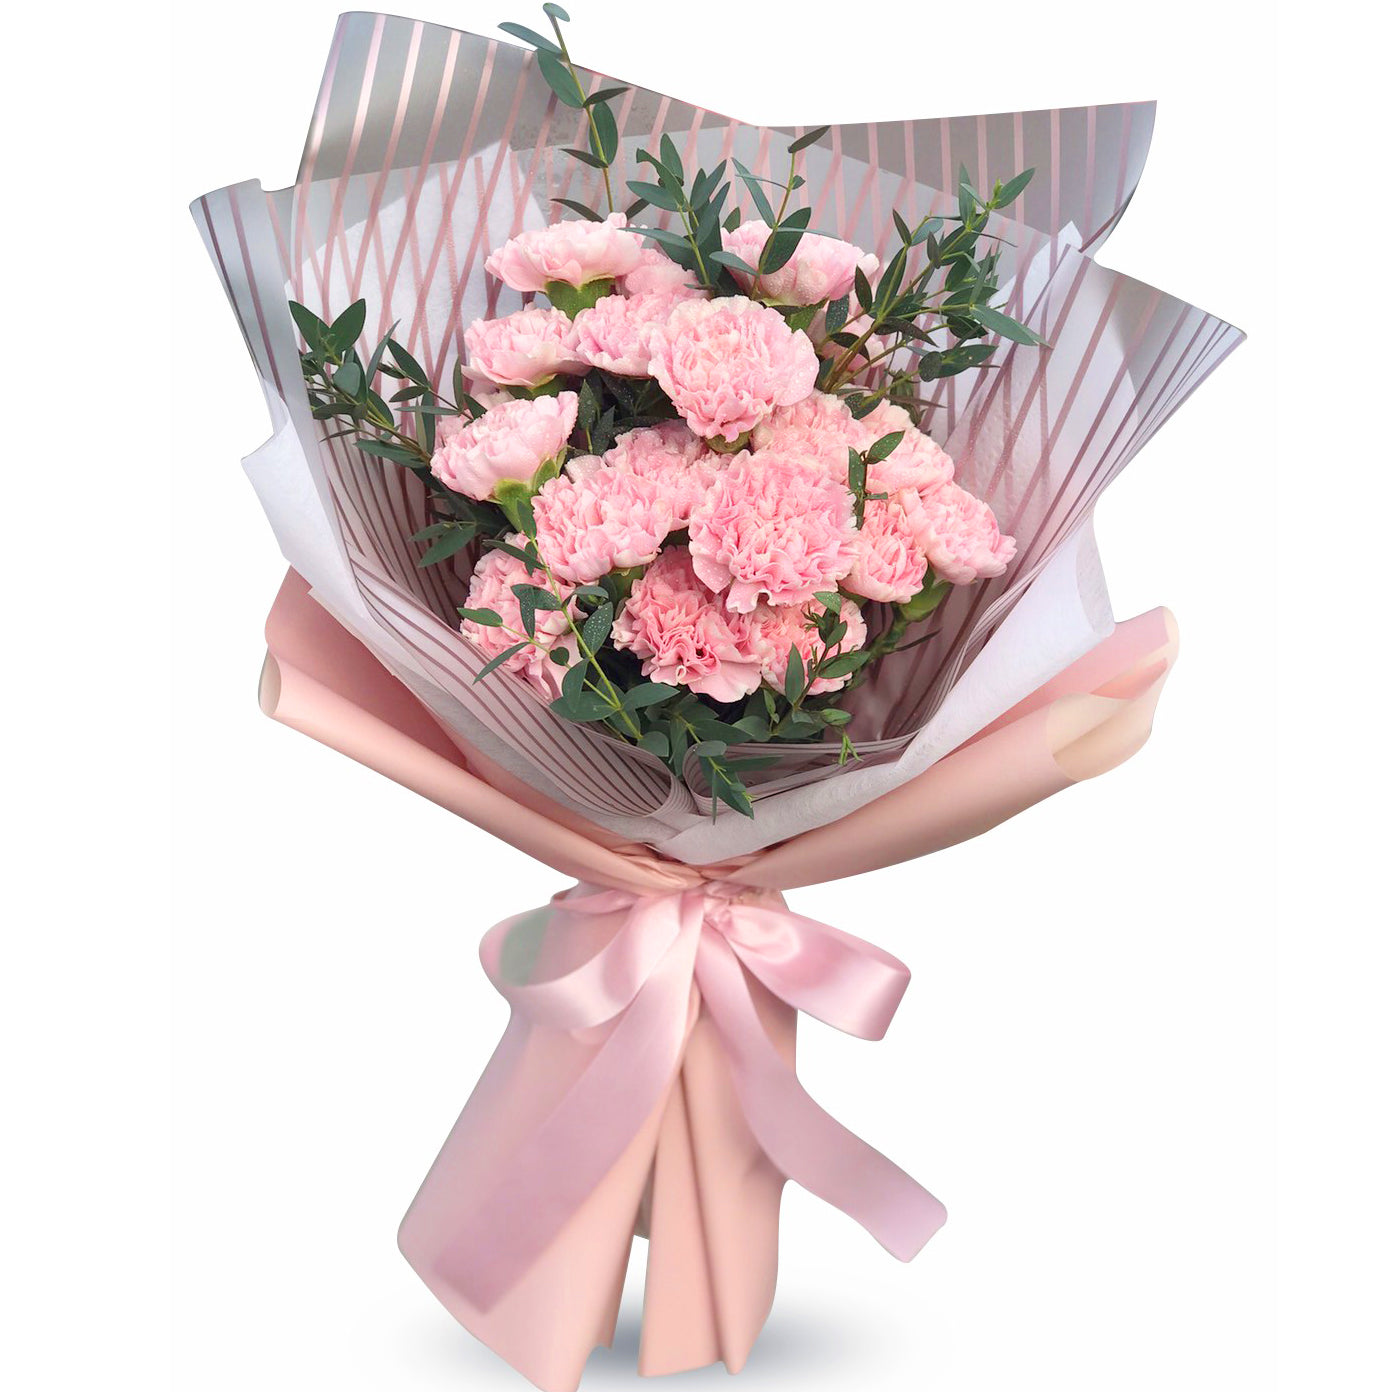 All Pink Fluffy Bouquet Of Carnations